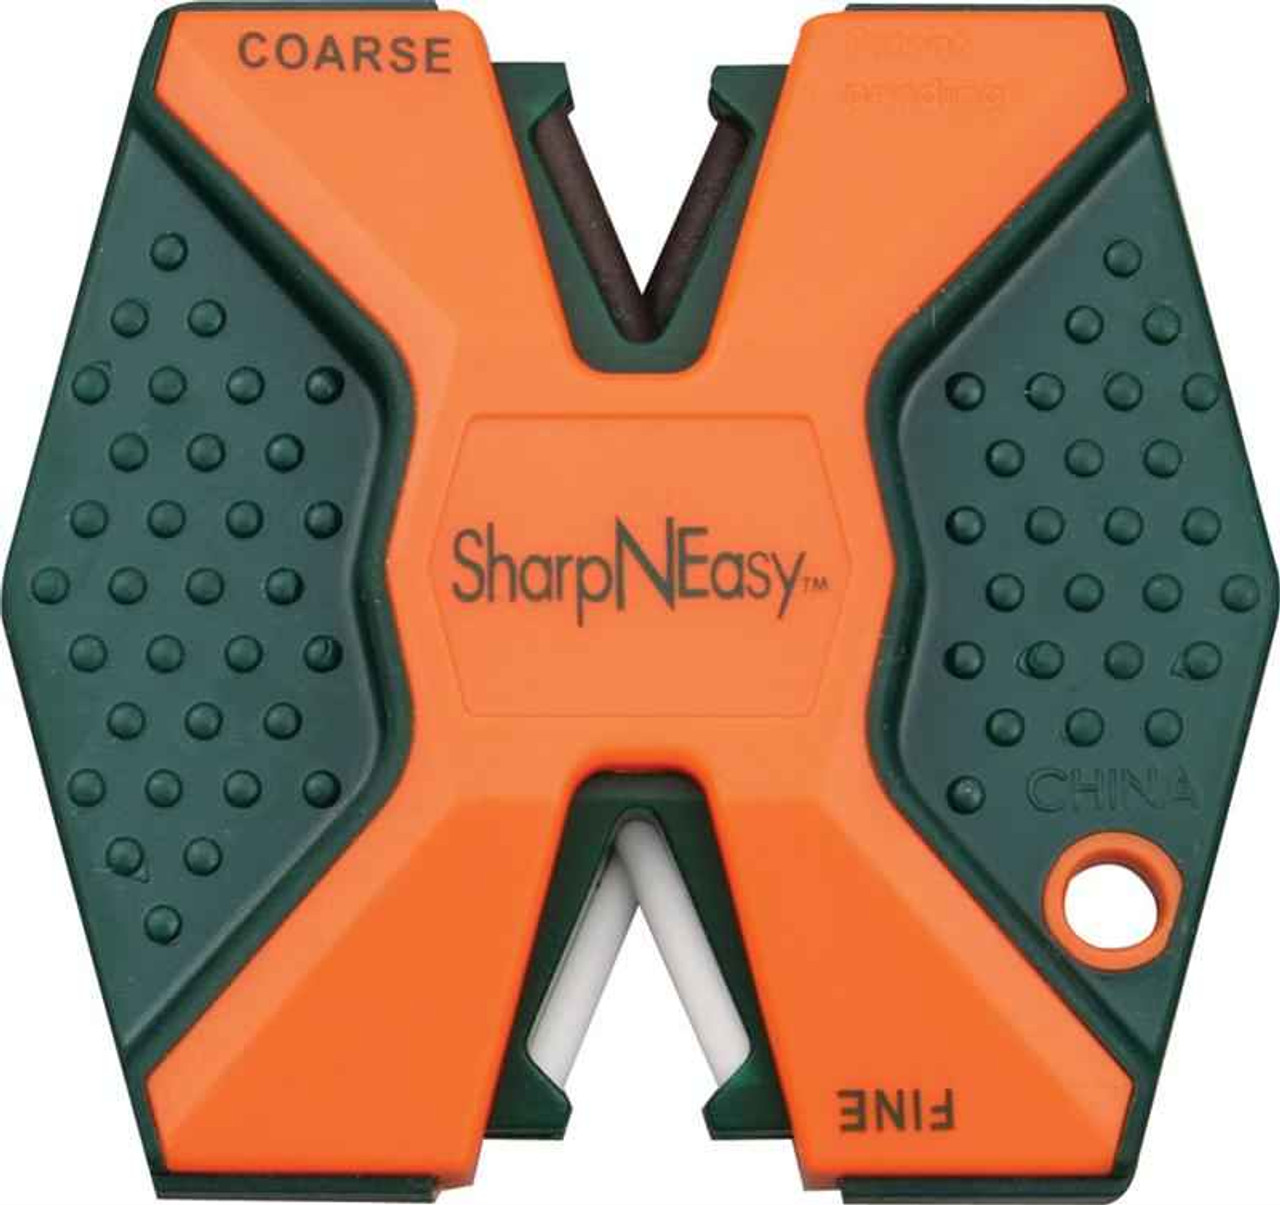 Accusharp AS336C Sharp-N-Easy 2 Stage Sharpener(Color May Vary)